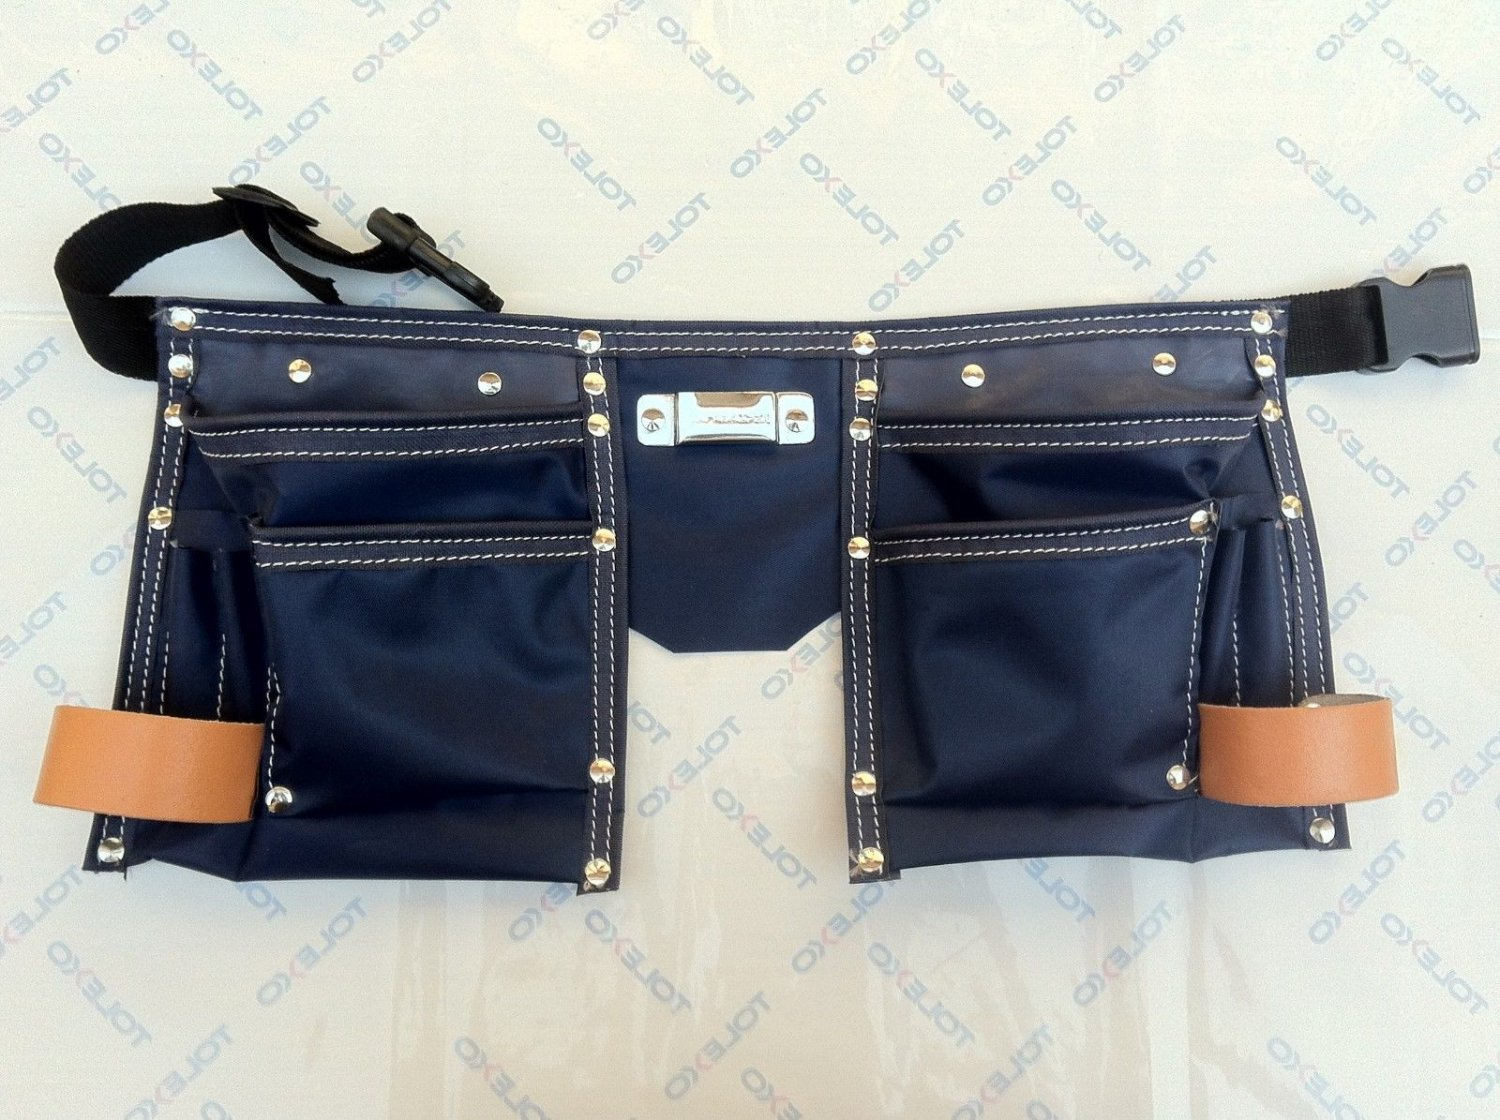 10 Pocket Heavy Duty Neavy Blue Coth Kids Tool Pouch Bag Belt